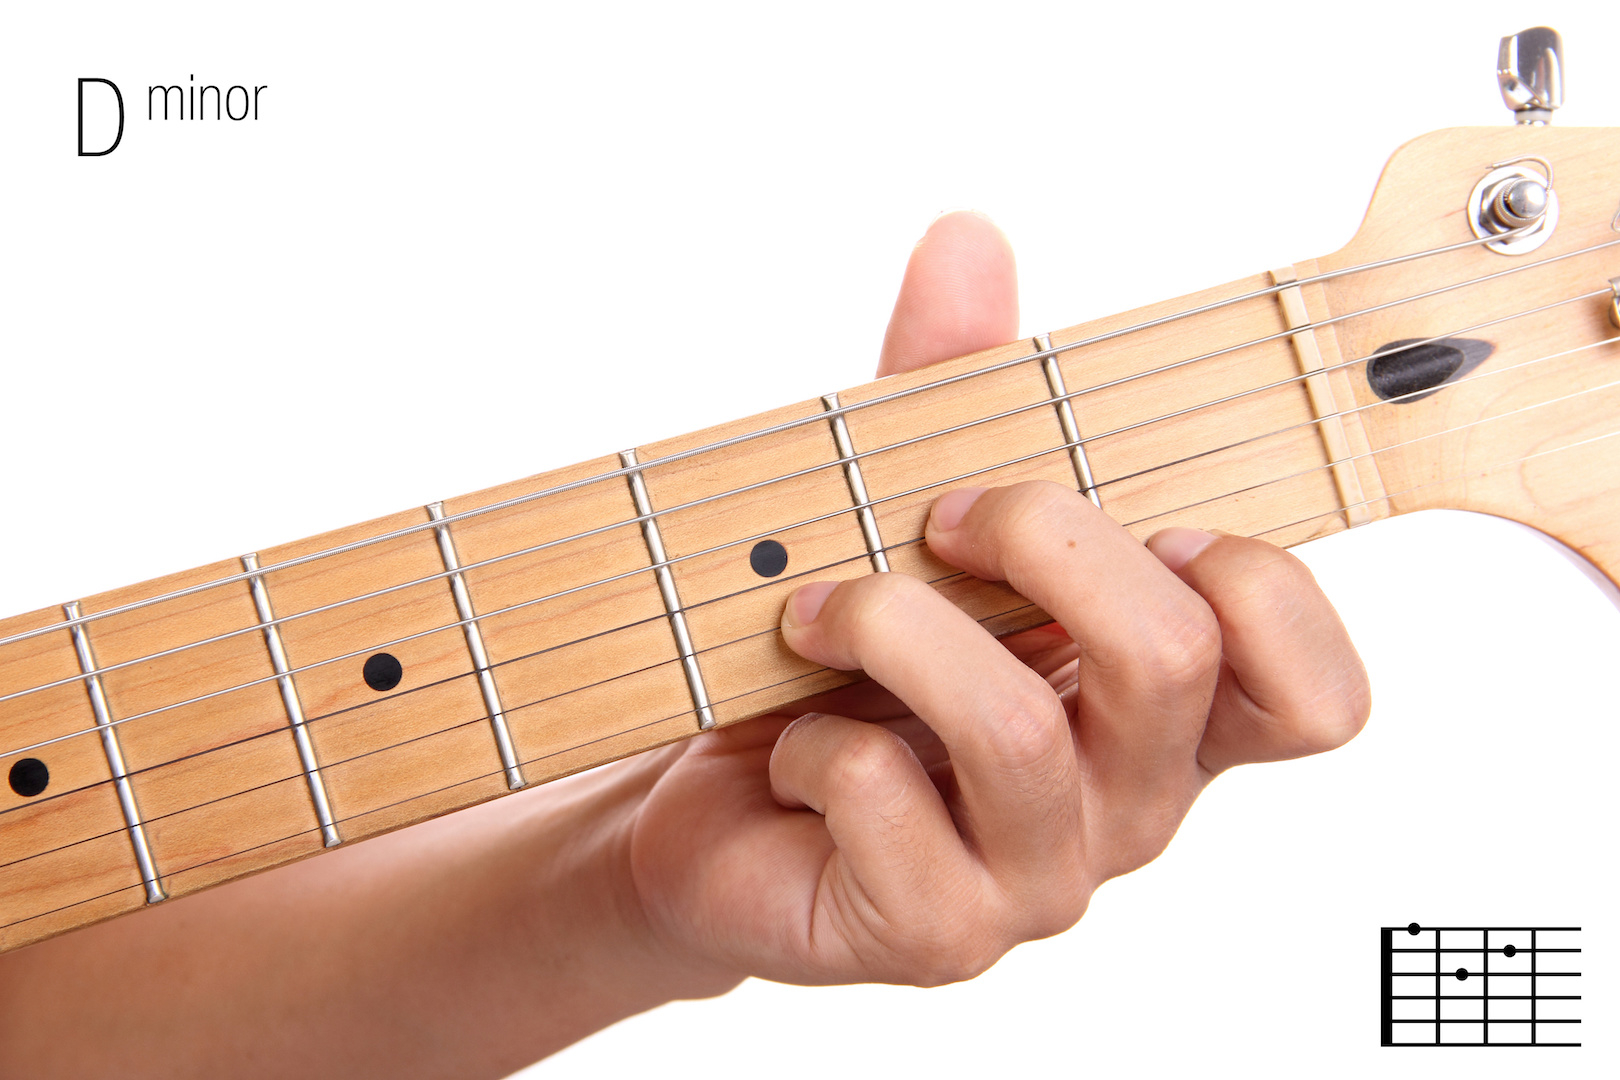 D Minor Chord D Minor Chord On Guitar Scale Popular Songs Videos